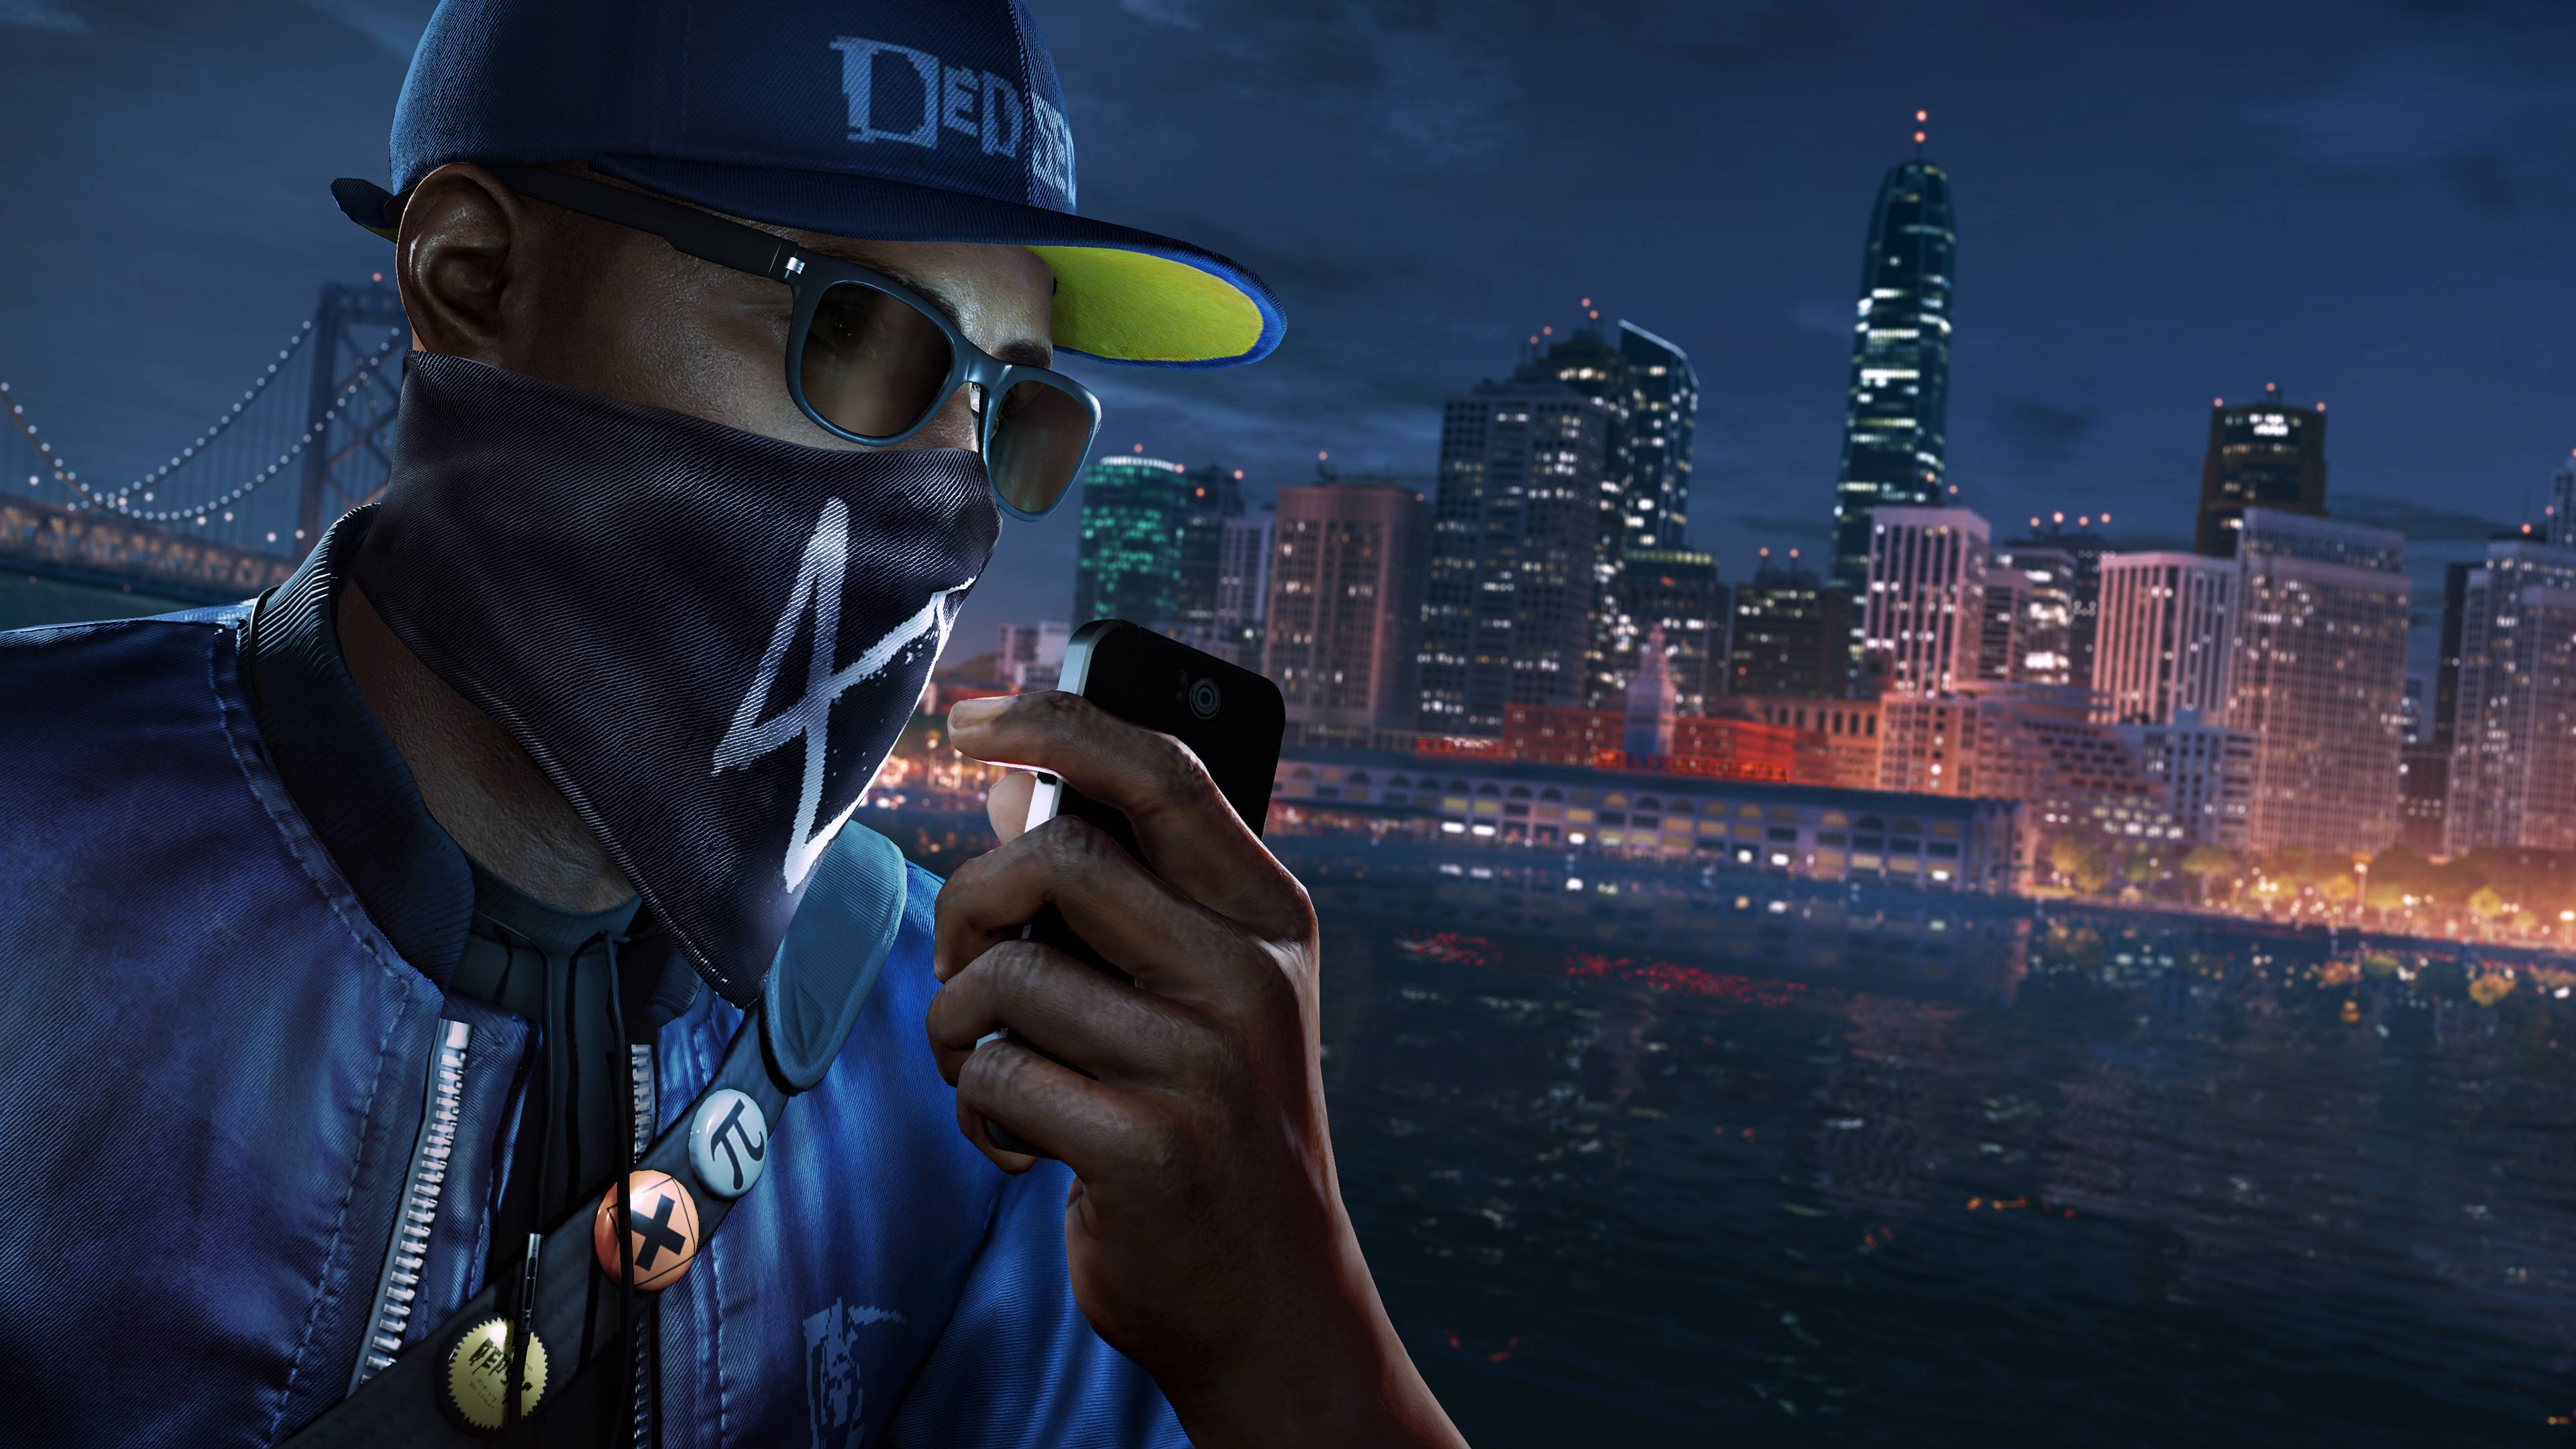 Watch Dogs 2 Ps4 Pro 4k Hd Games 4k Wallpapers Images